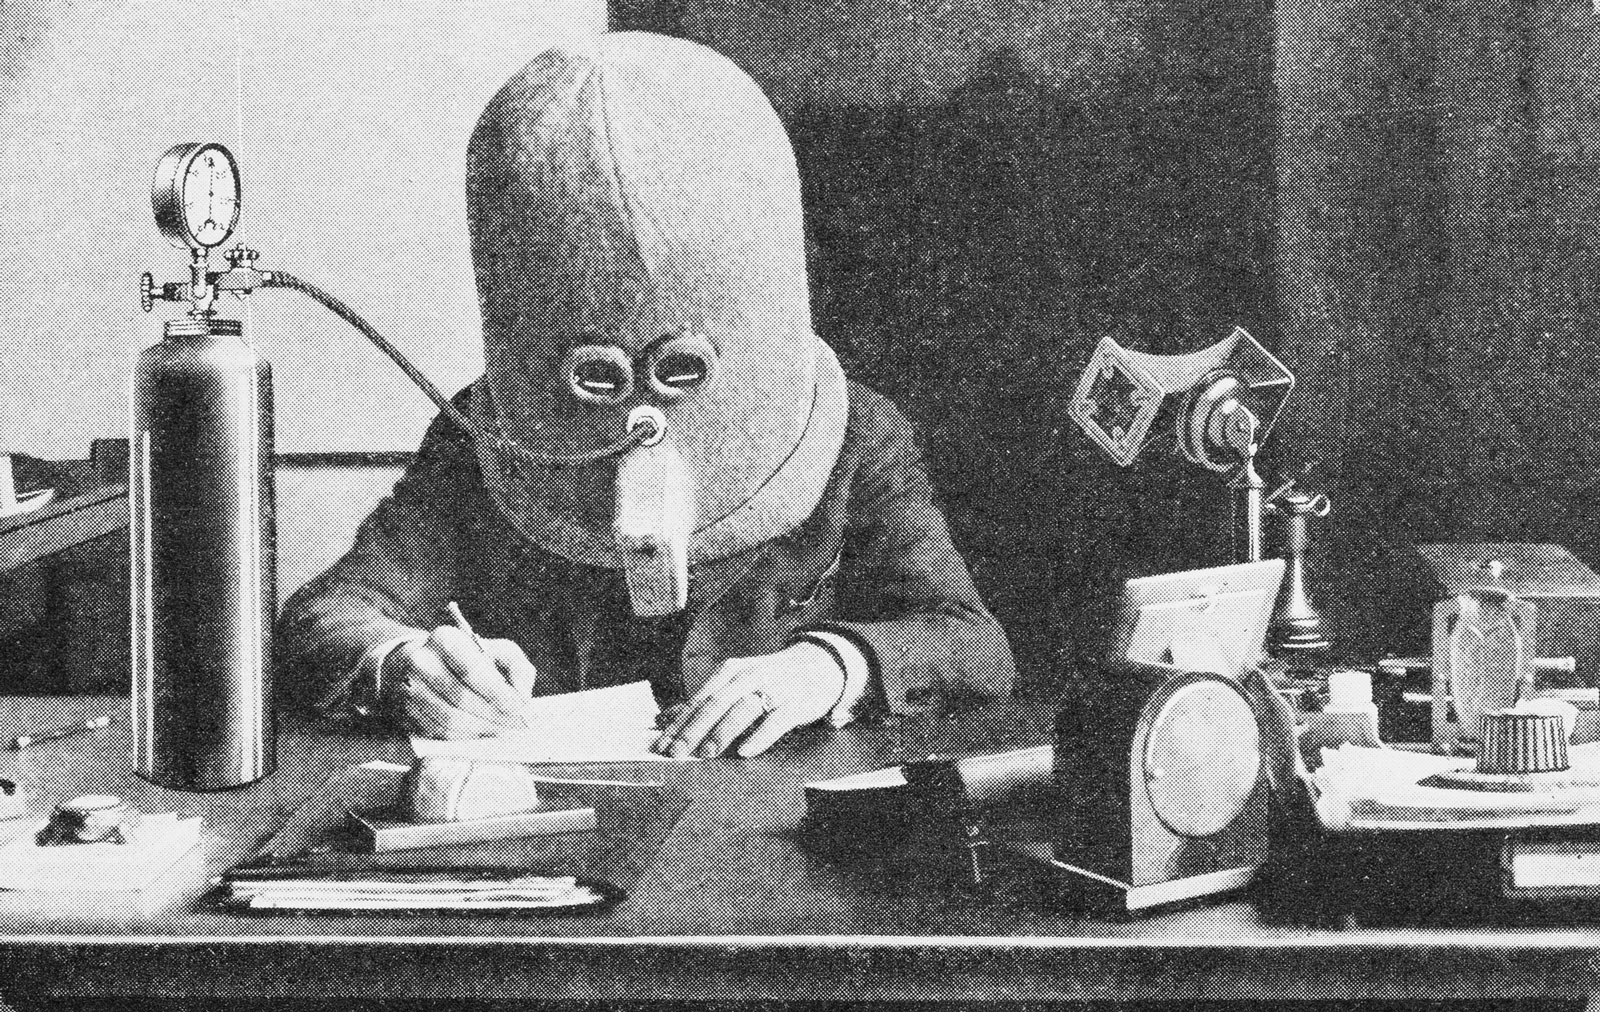 Hugo Gernsback wearing his Isolator, which eliminates external noises for concentration, from Science and Invention, July, 1925